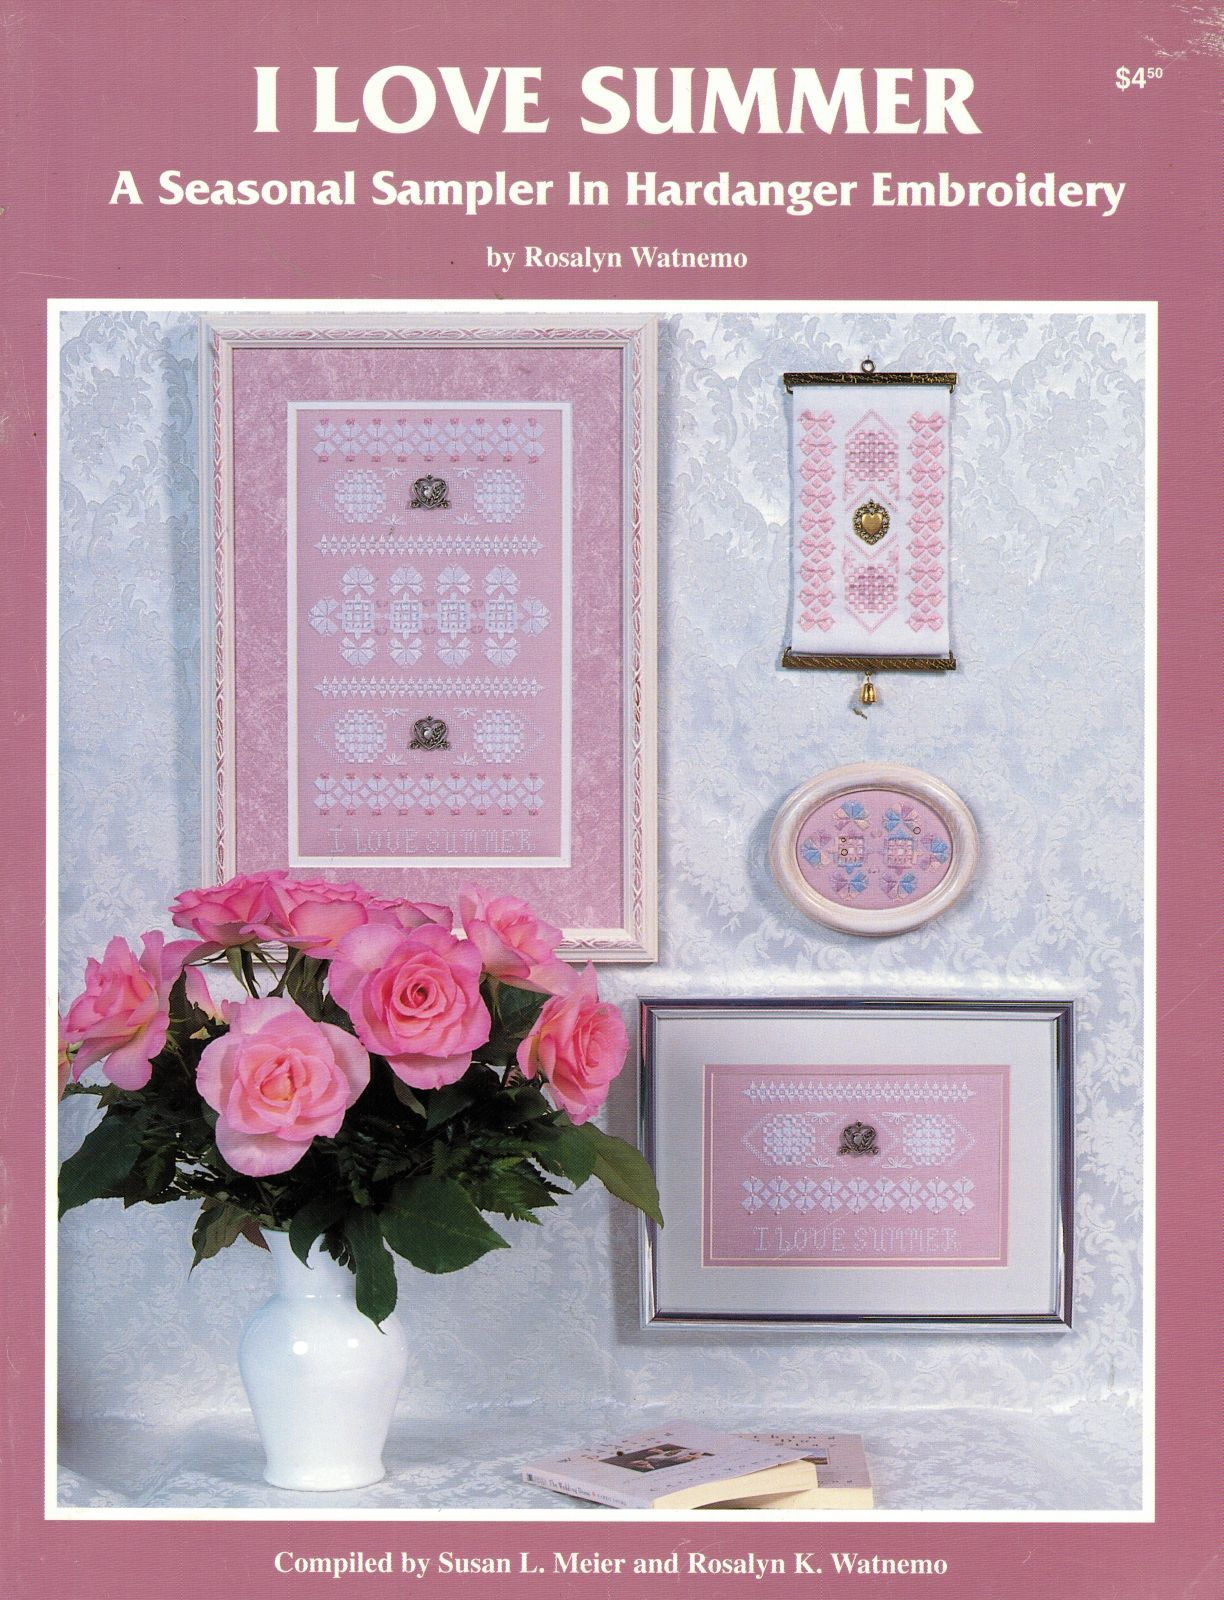 I Love Summer Hardanger Embroidery Seasonal Sampler Rosalyn Watnemo Book image 6